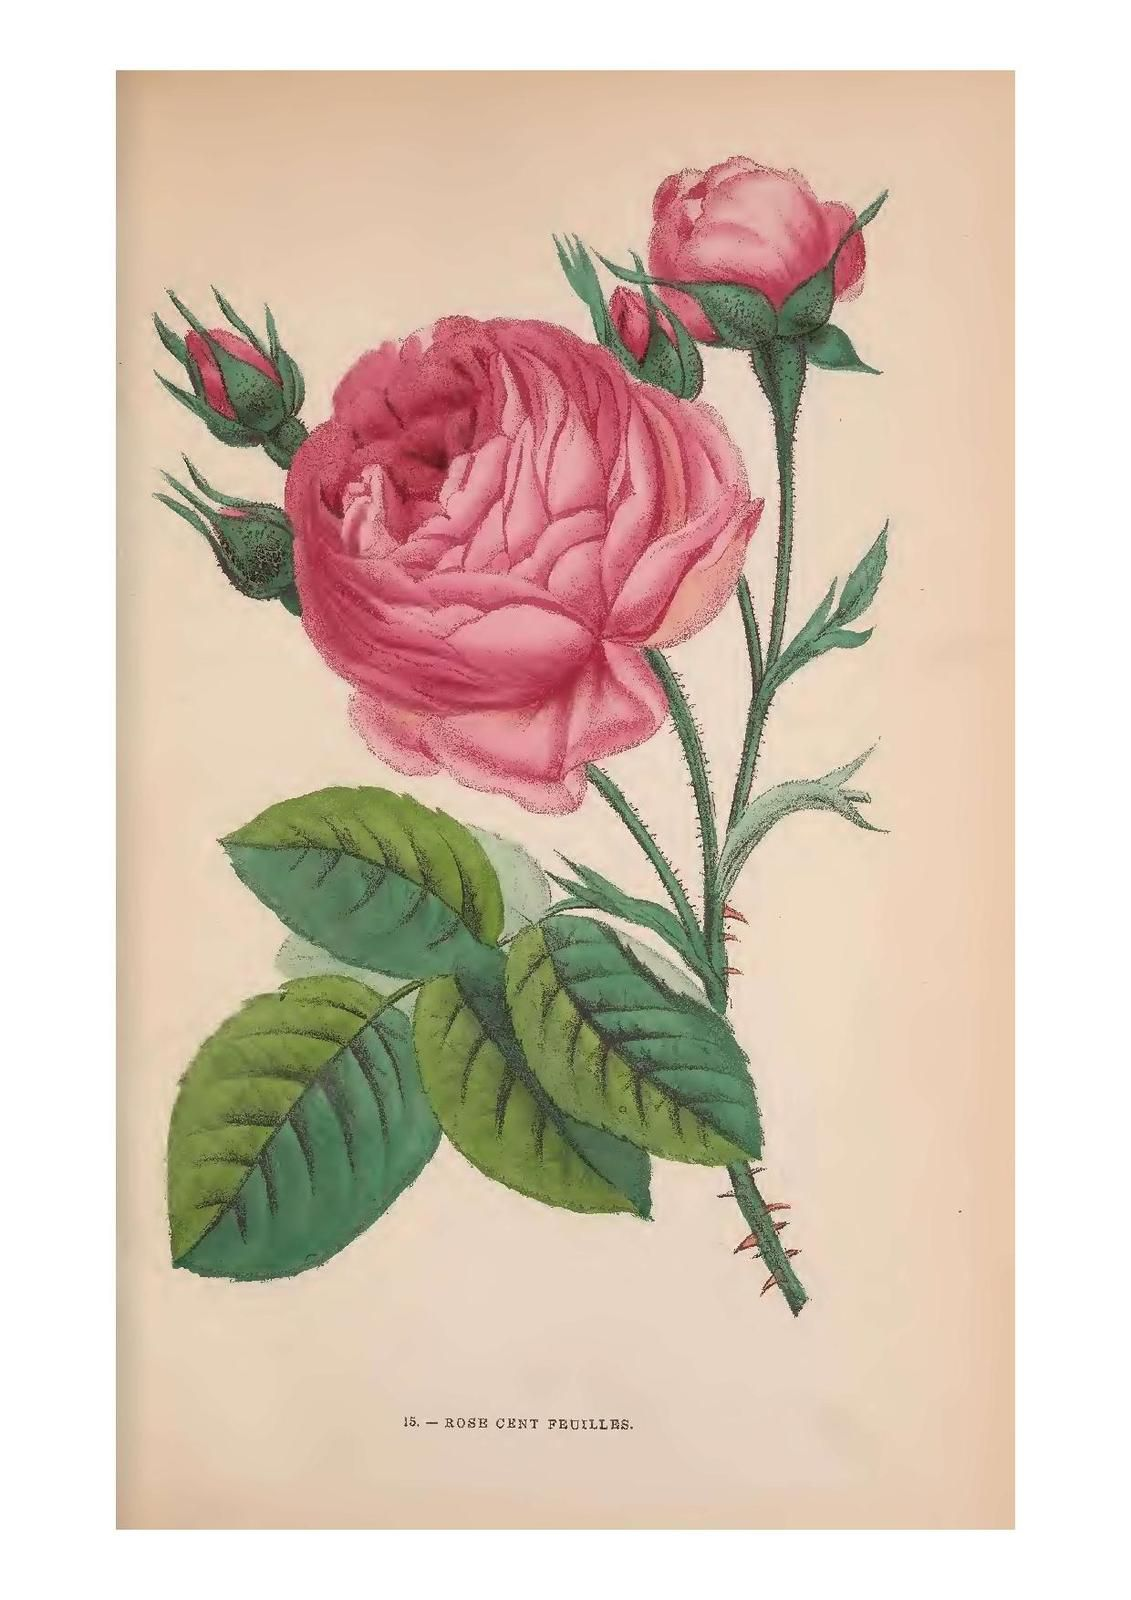 cent feuilles Les Roses  by Hippolyte Jamain and Eugène Forney 1873